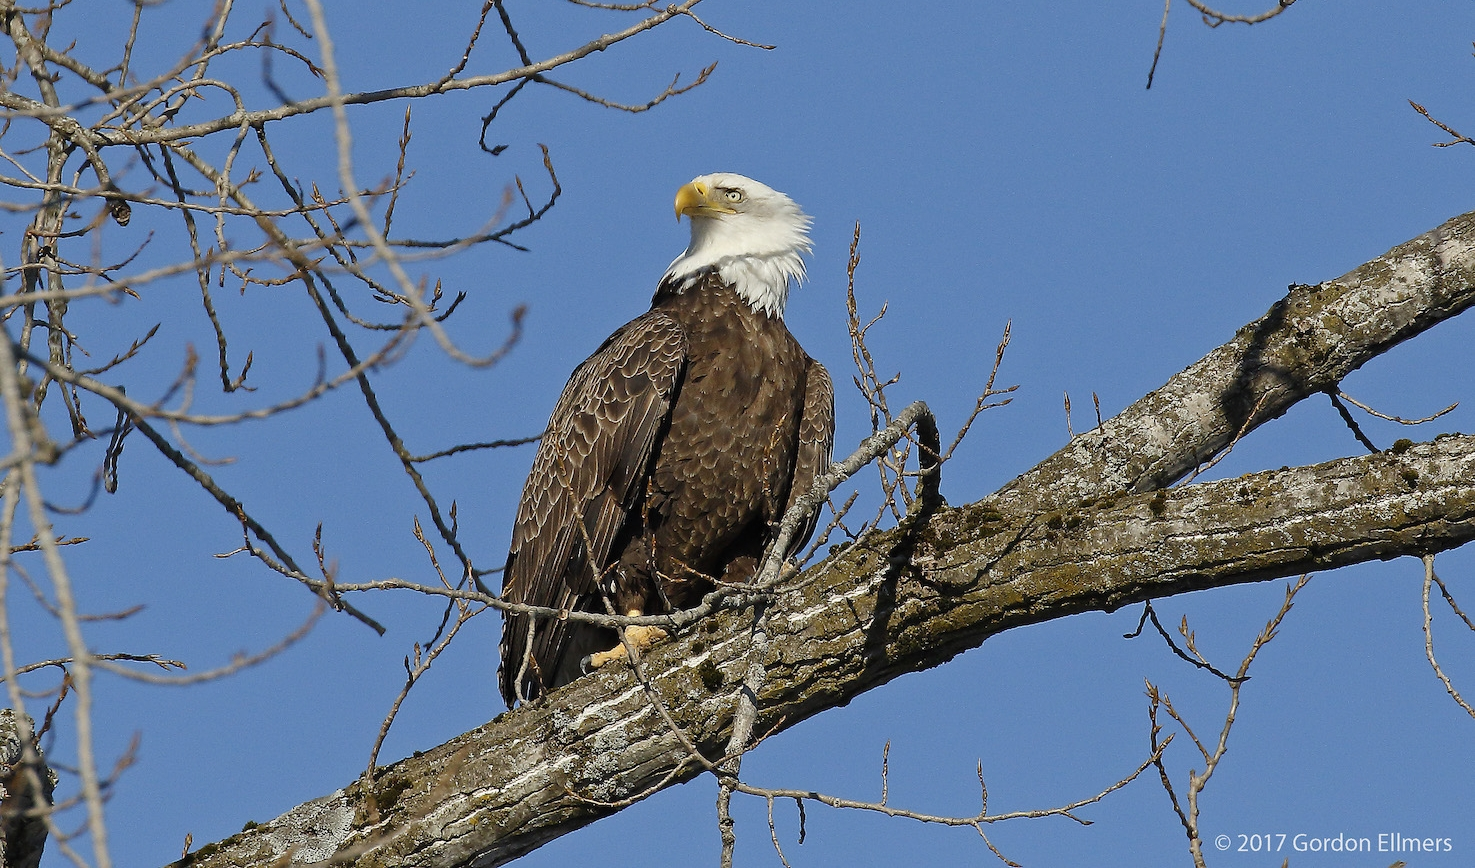 BY 1975, THE COMBINED EFFECTS OF HABITAT DESTRUCTION AND POLLUTANTS SUCH AS DDT, BROUGHT THE BALD EAGLE POPULATION DOWN TO ONE SINGLE BREEDING PAIR IN ALL OF NEW YORK STATE. TODAY, THANKS TO THE EFFORTS OF THE ENVIRONMENTAL PROTECTION AGENCY AND CONSERVATIONISTS, THERE ARE HUNDREDS OF NESTING BALD EAGLE (AND OSPREY) PAIRS IN NEW YORK STATE. IMAGE: GORDON ELLMERS